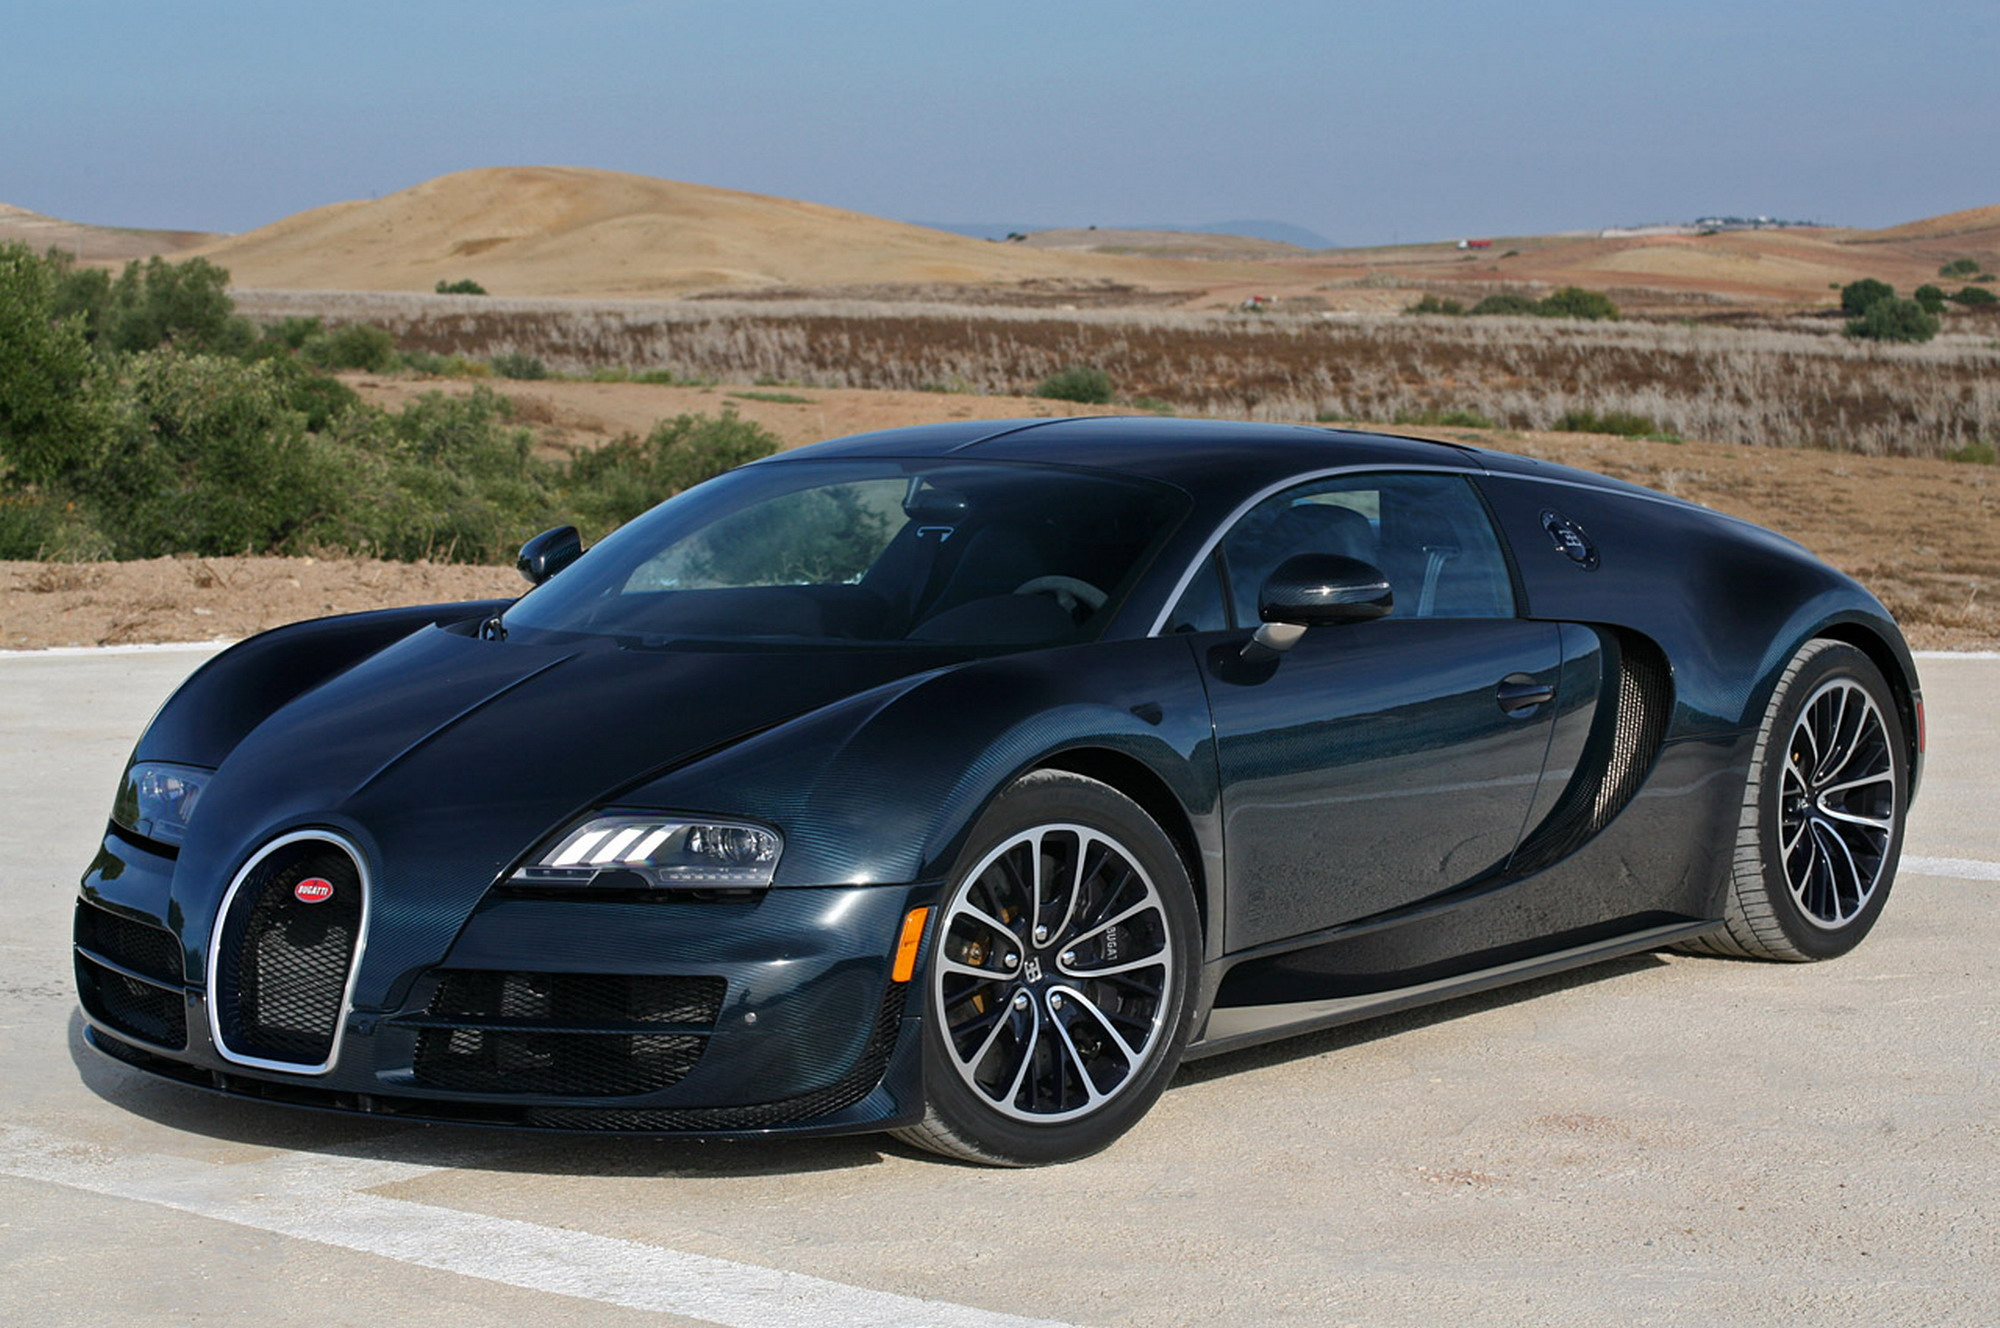 Bugatti Veyron Cost 23 Cool Hd Wallpaper Carwallpapersfordesktop Org